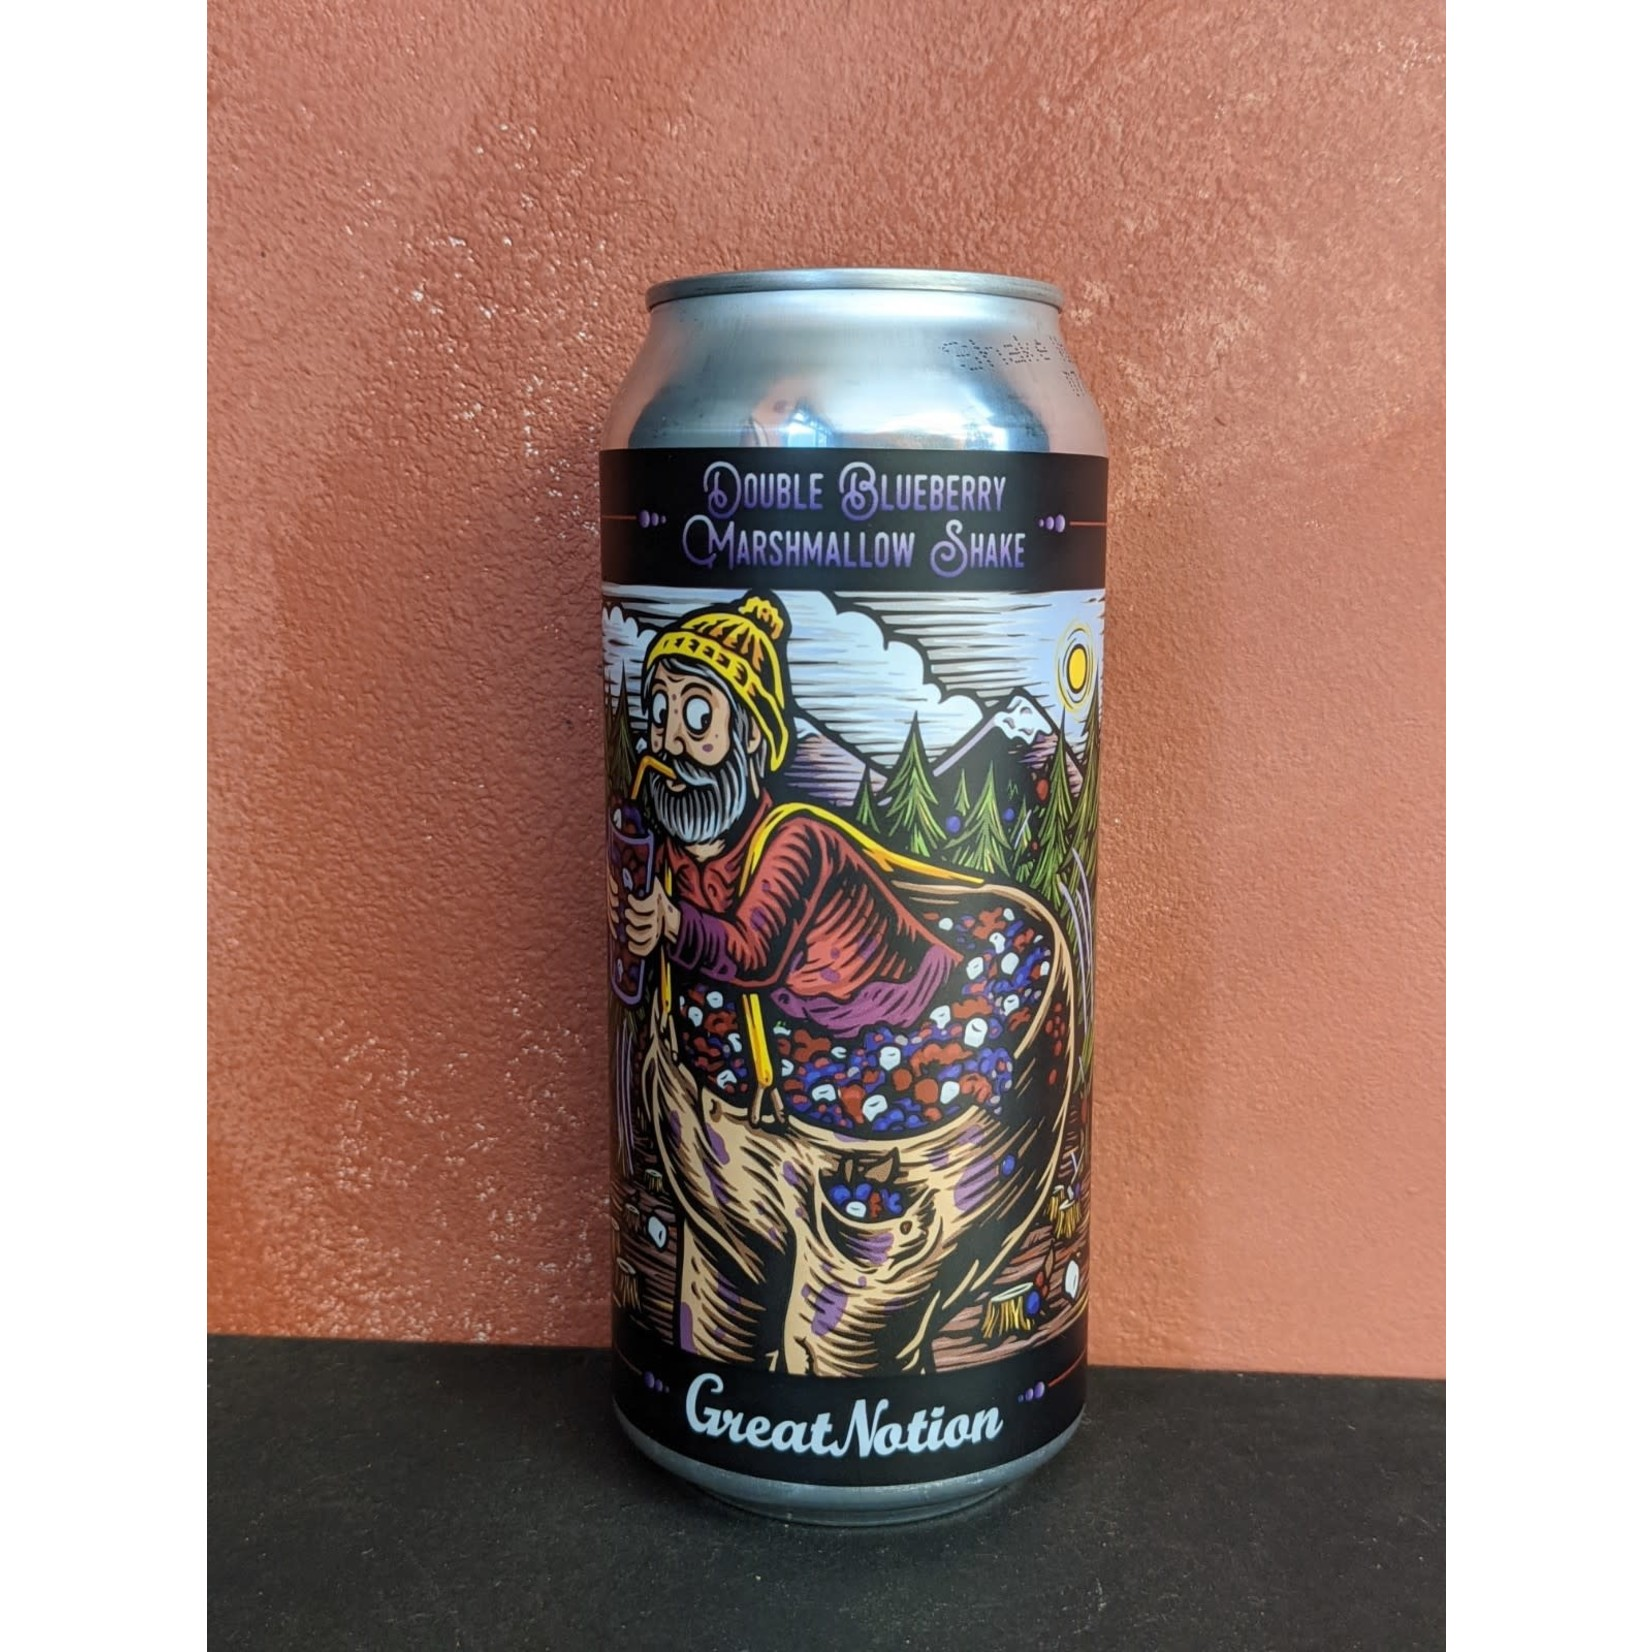 """Great Notion """"Double Blueberry Marshmallow Shake"""" Sour CAN"""